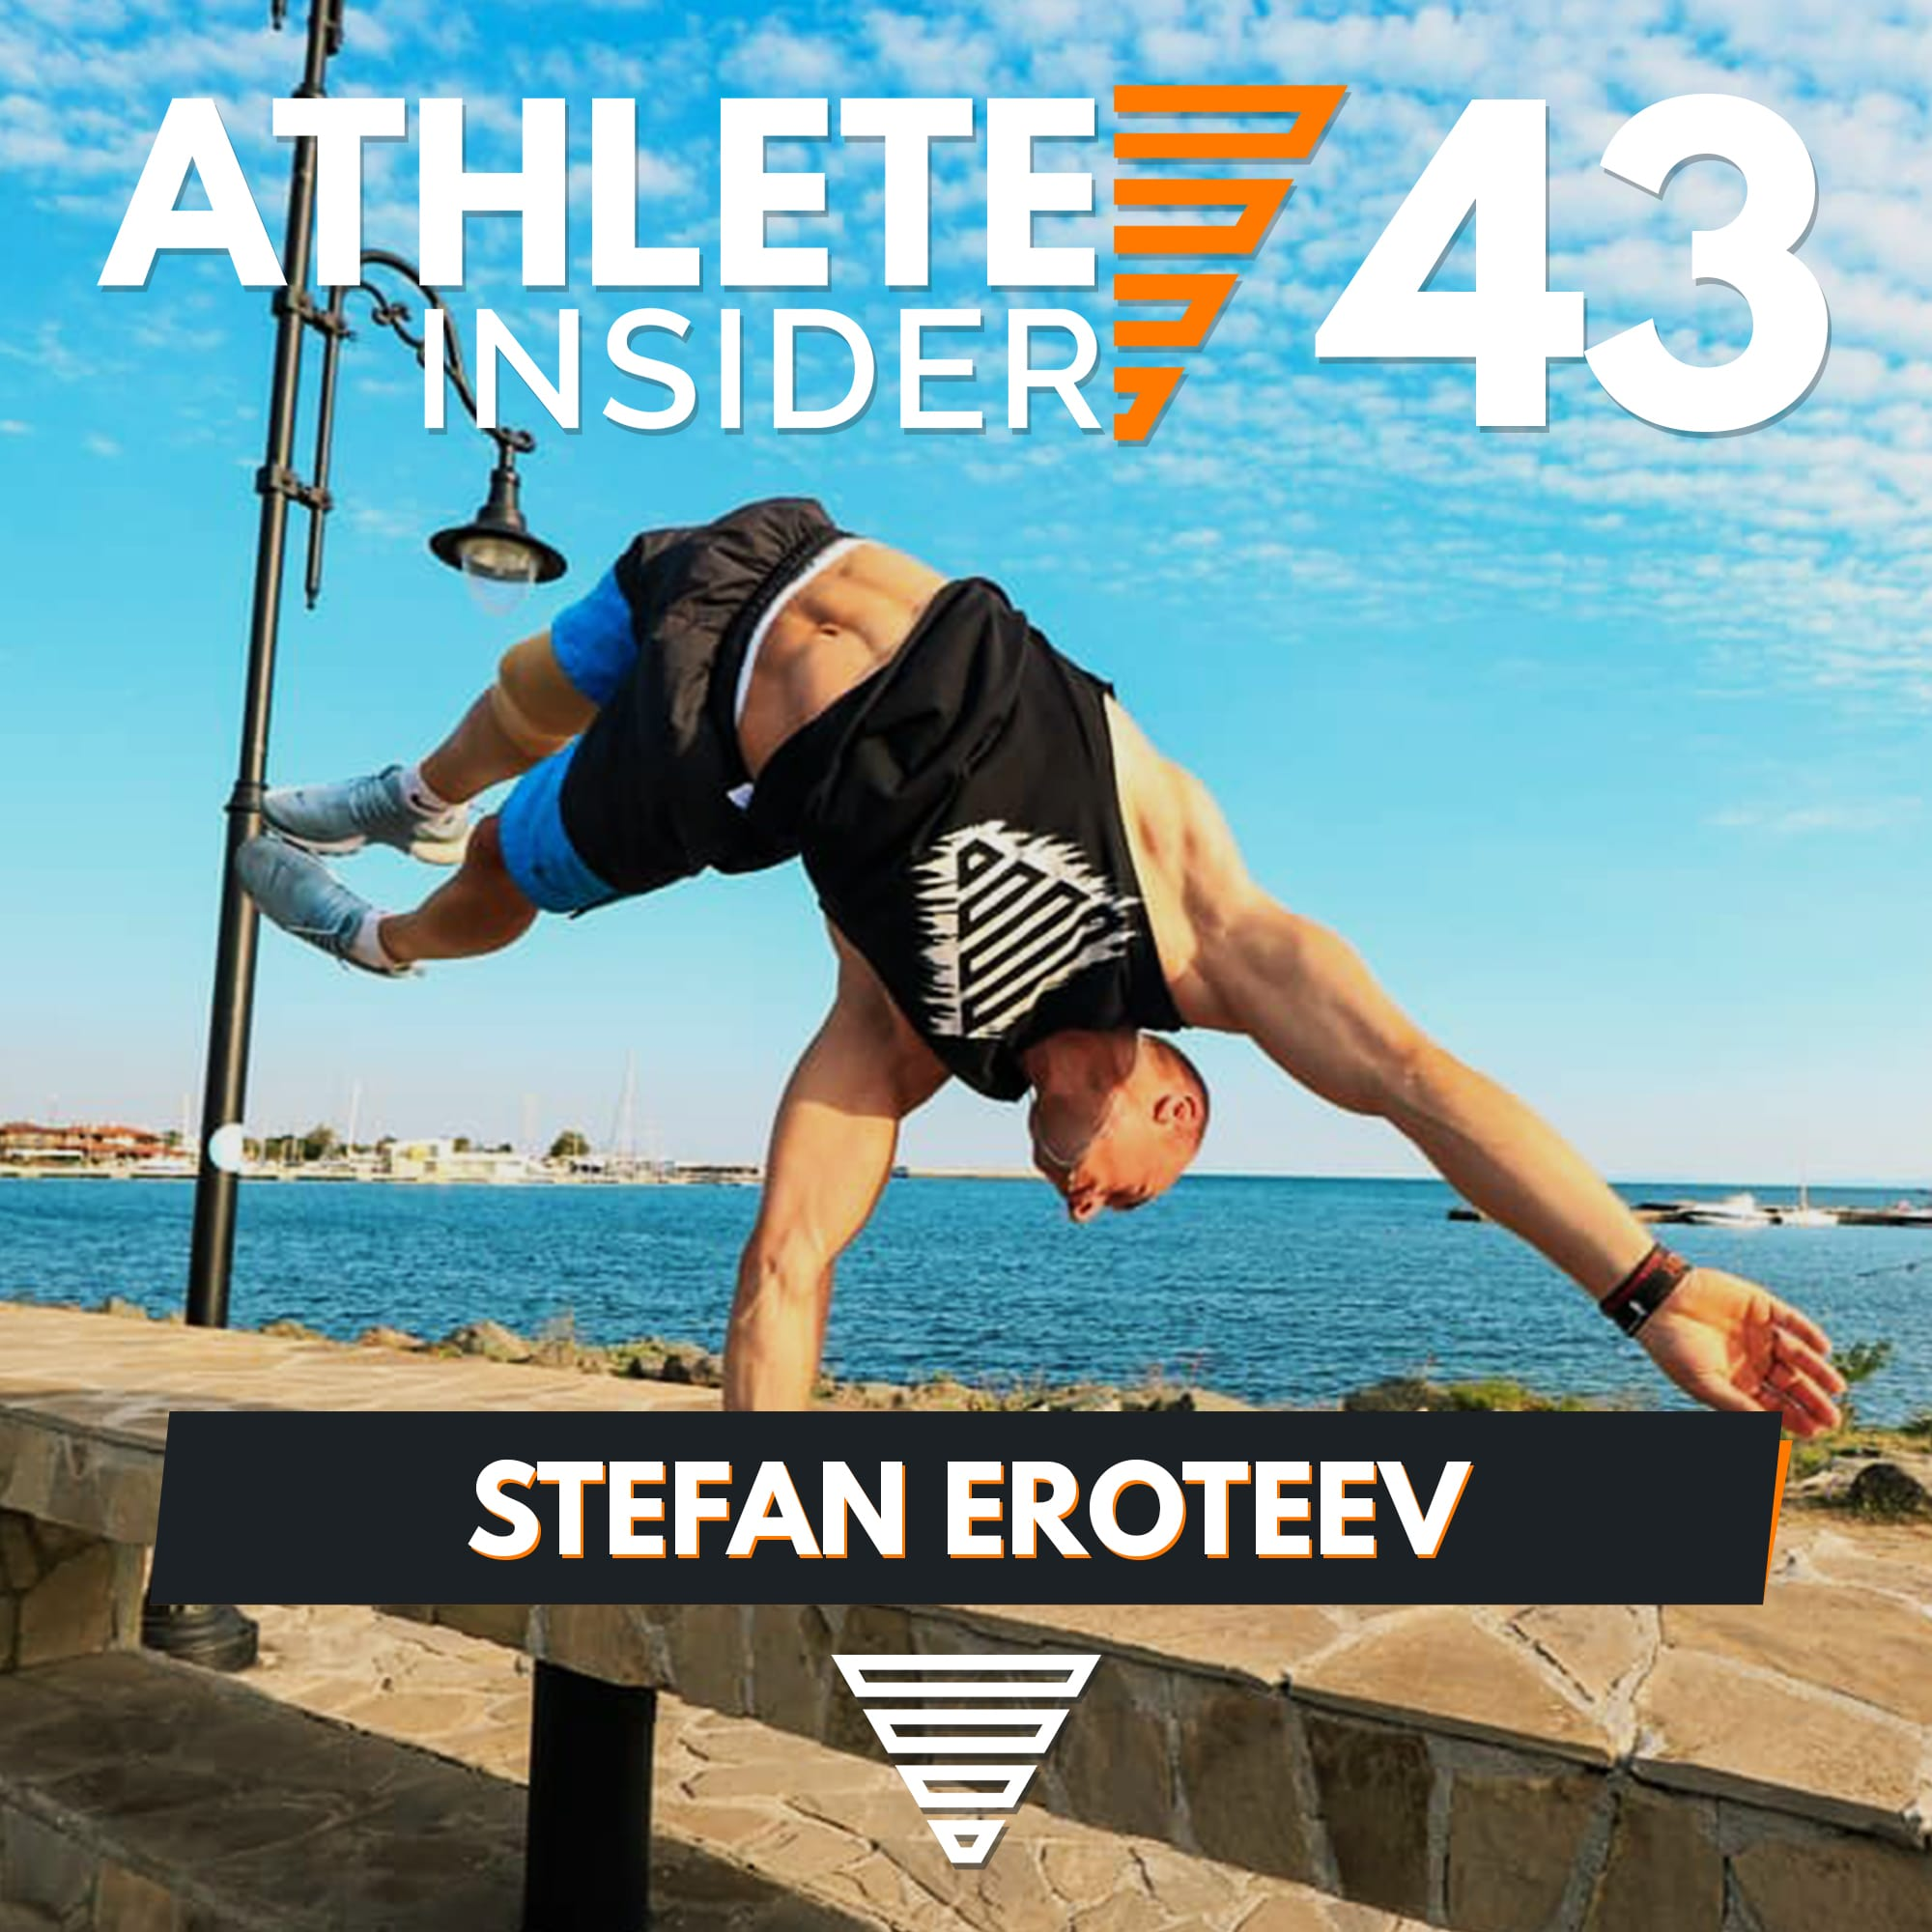 STEFAN EROTEEV | Planche vs. Leg Workout? | Interview | The Athlete Insider Podcast #43